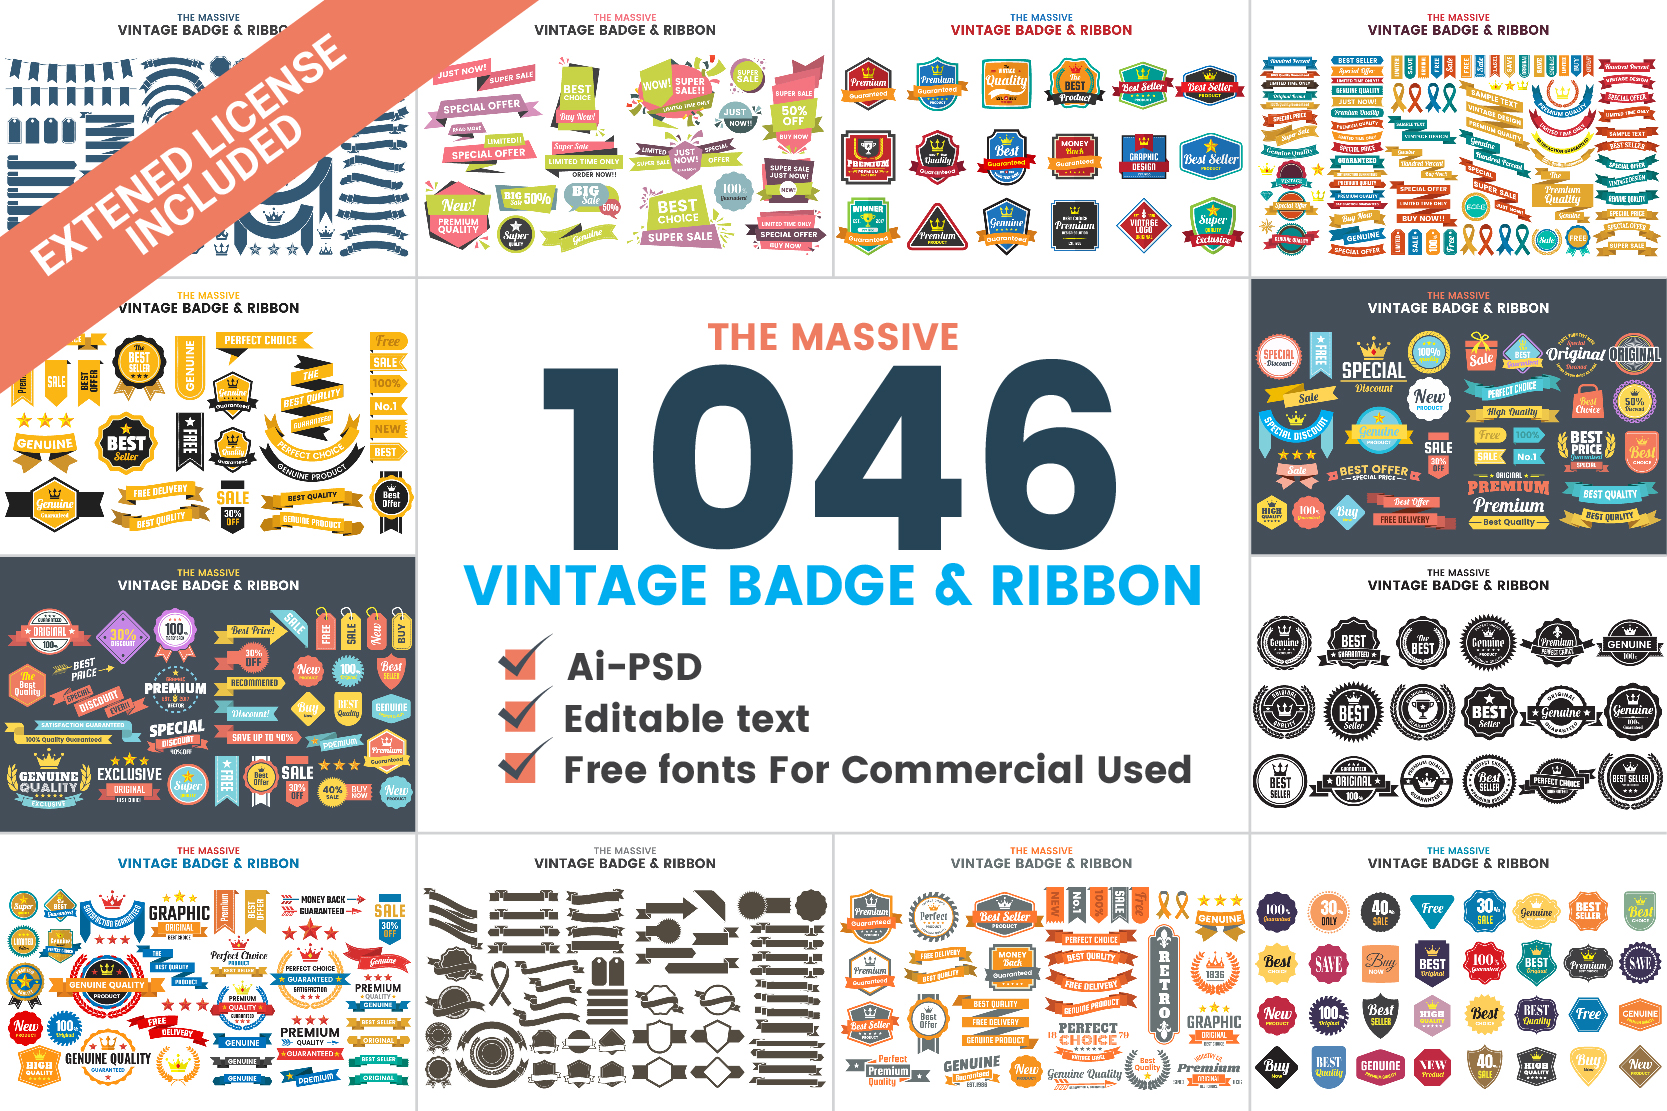 1046 VINTAGE BADGE & RIBBON example image 1